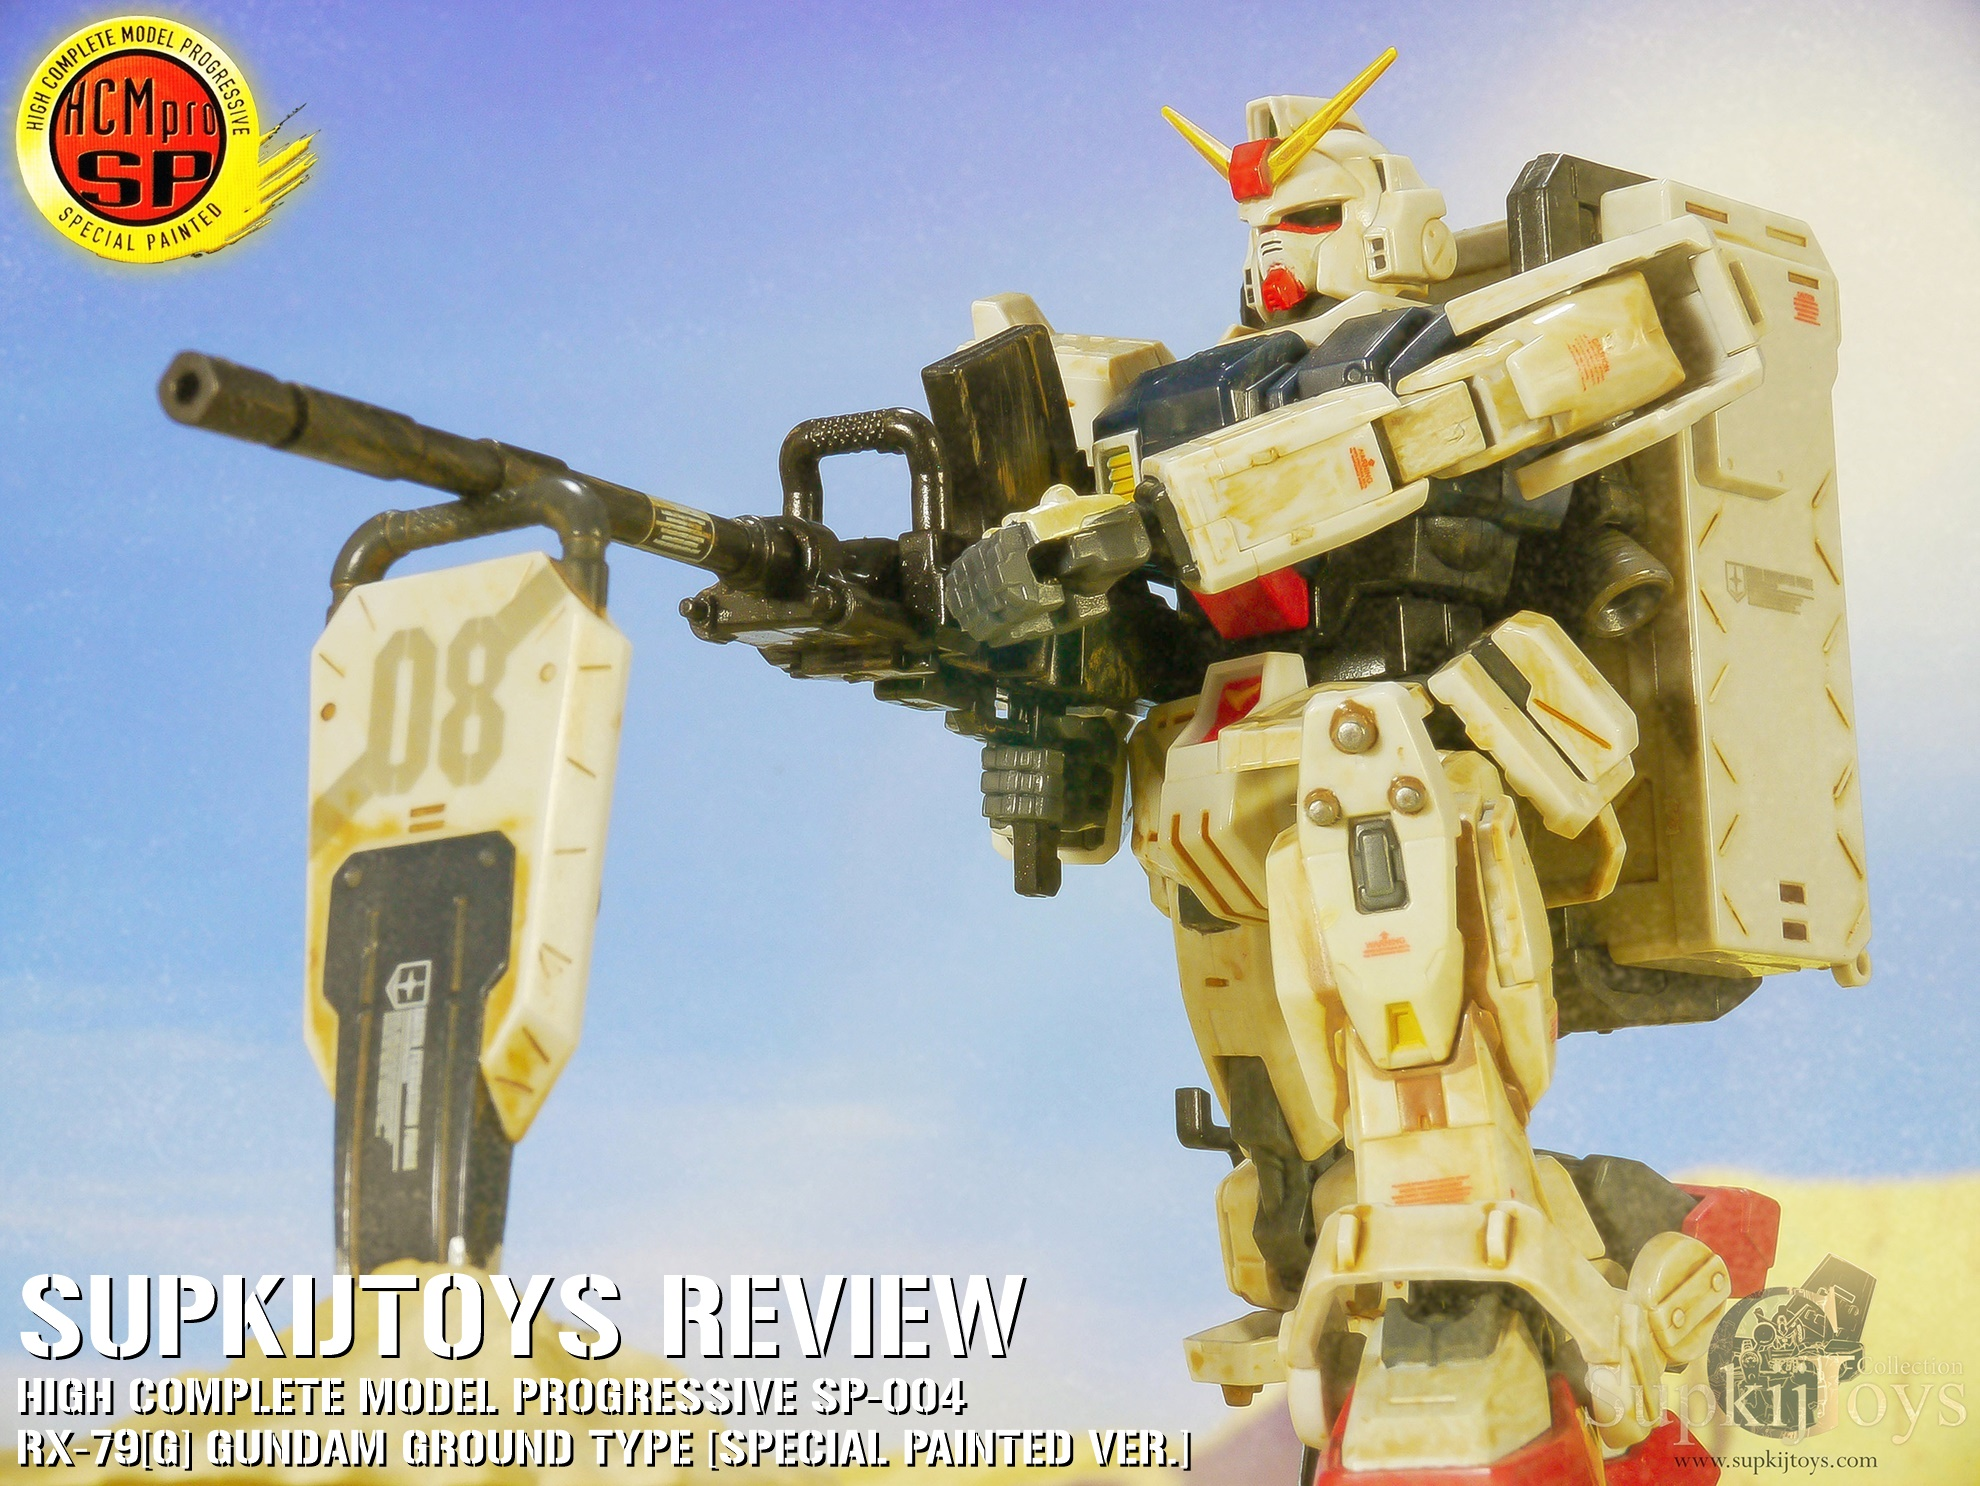 SupkijToys HCM-Pro High Complete Model Progressive Special Painted SP-004 RX-79[G] Gundam Ground Type [Desert Ver.] - Review